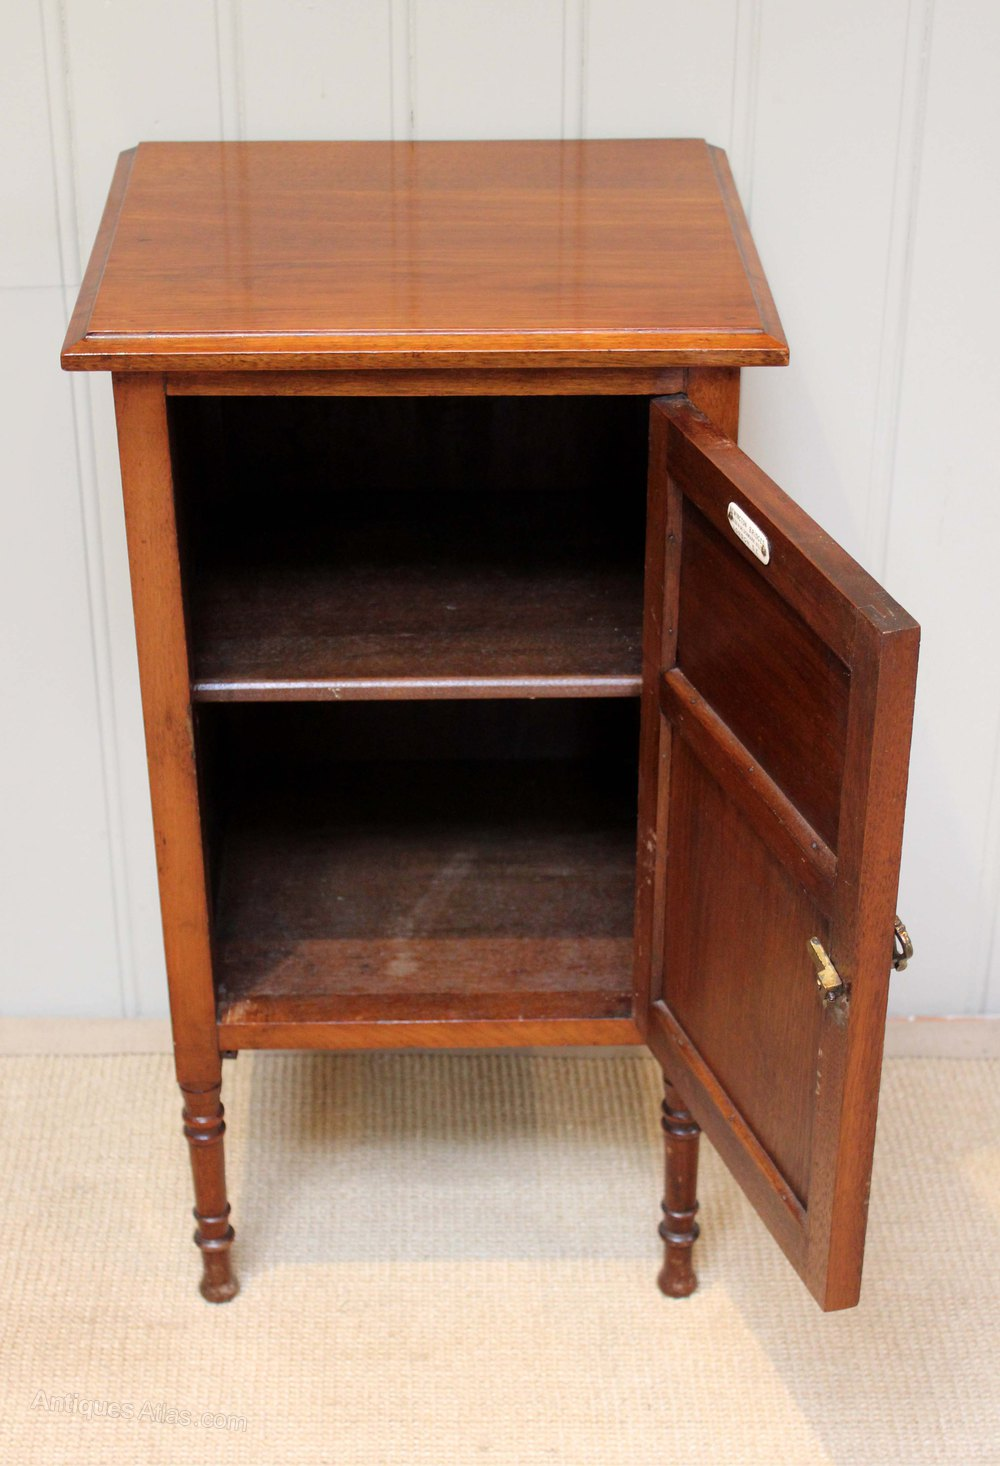 edwardian walnut bedside cabinet having a single panelled door having